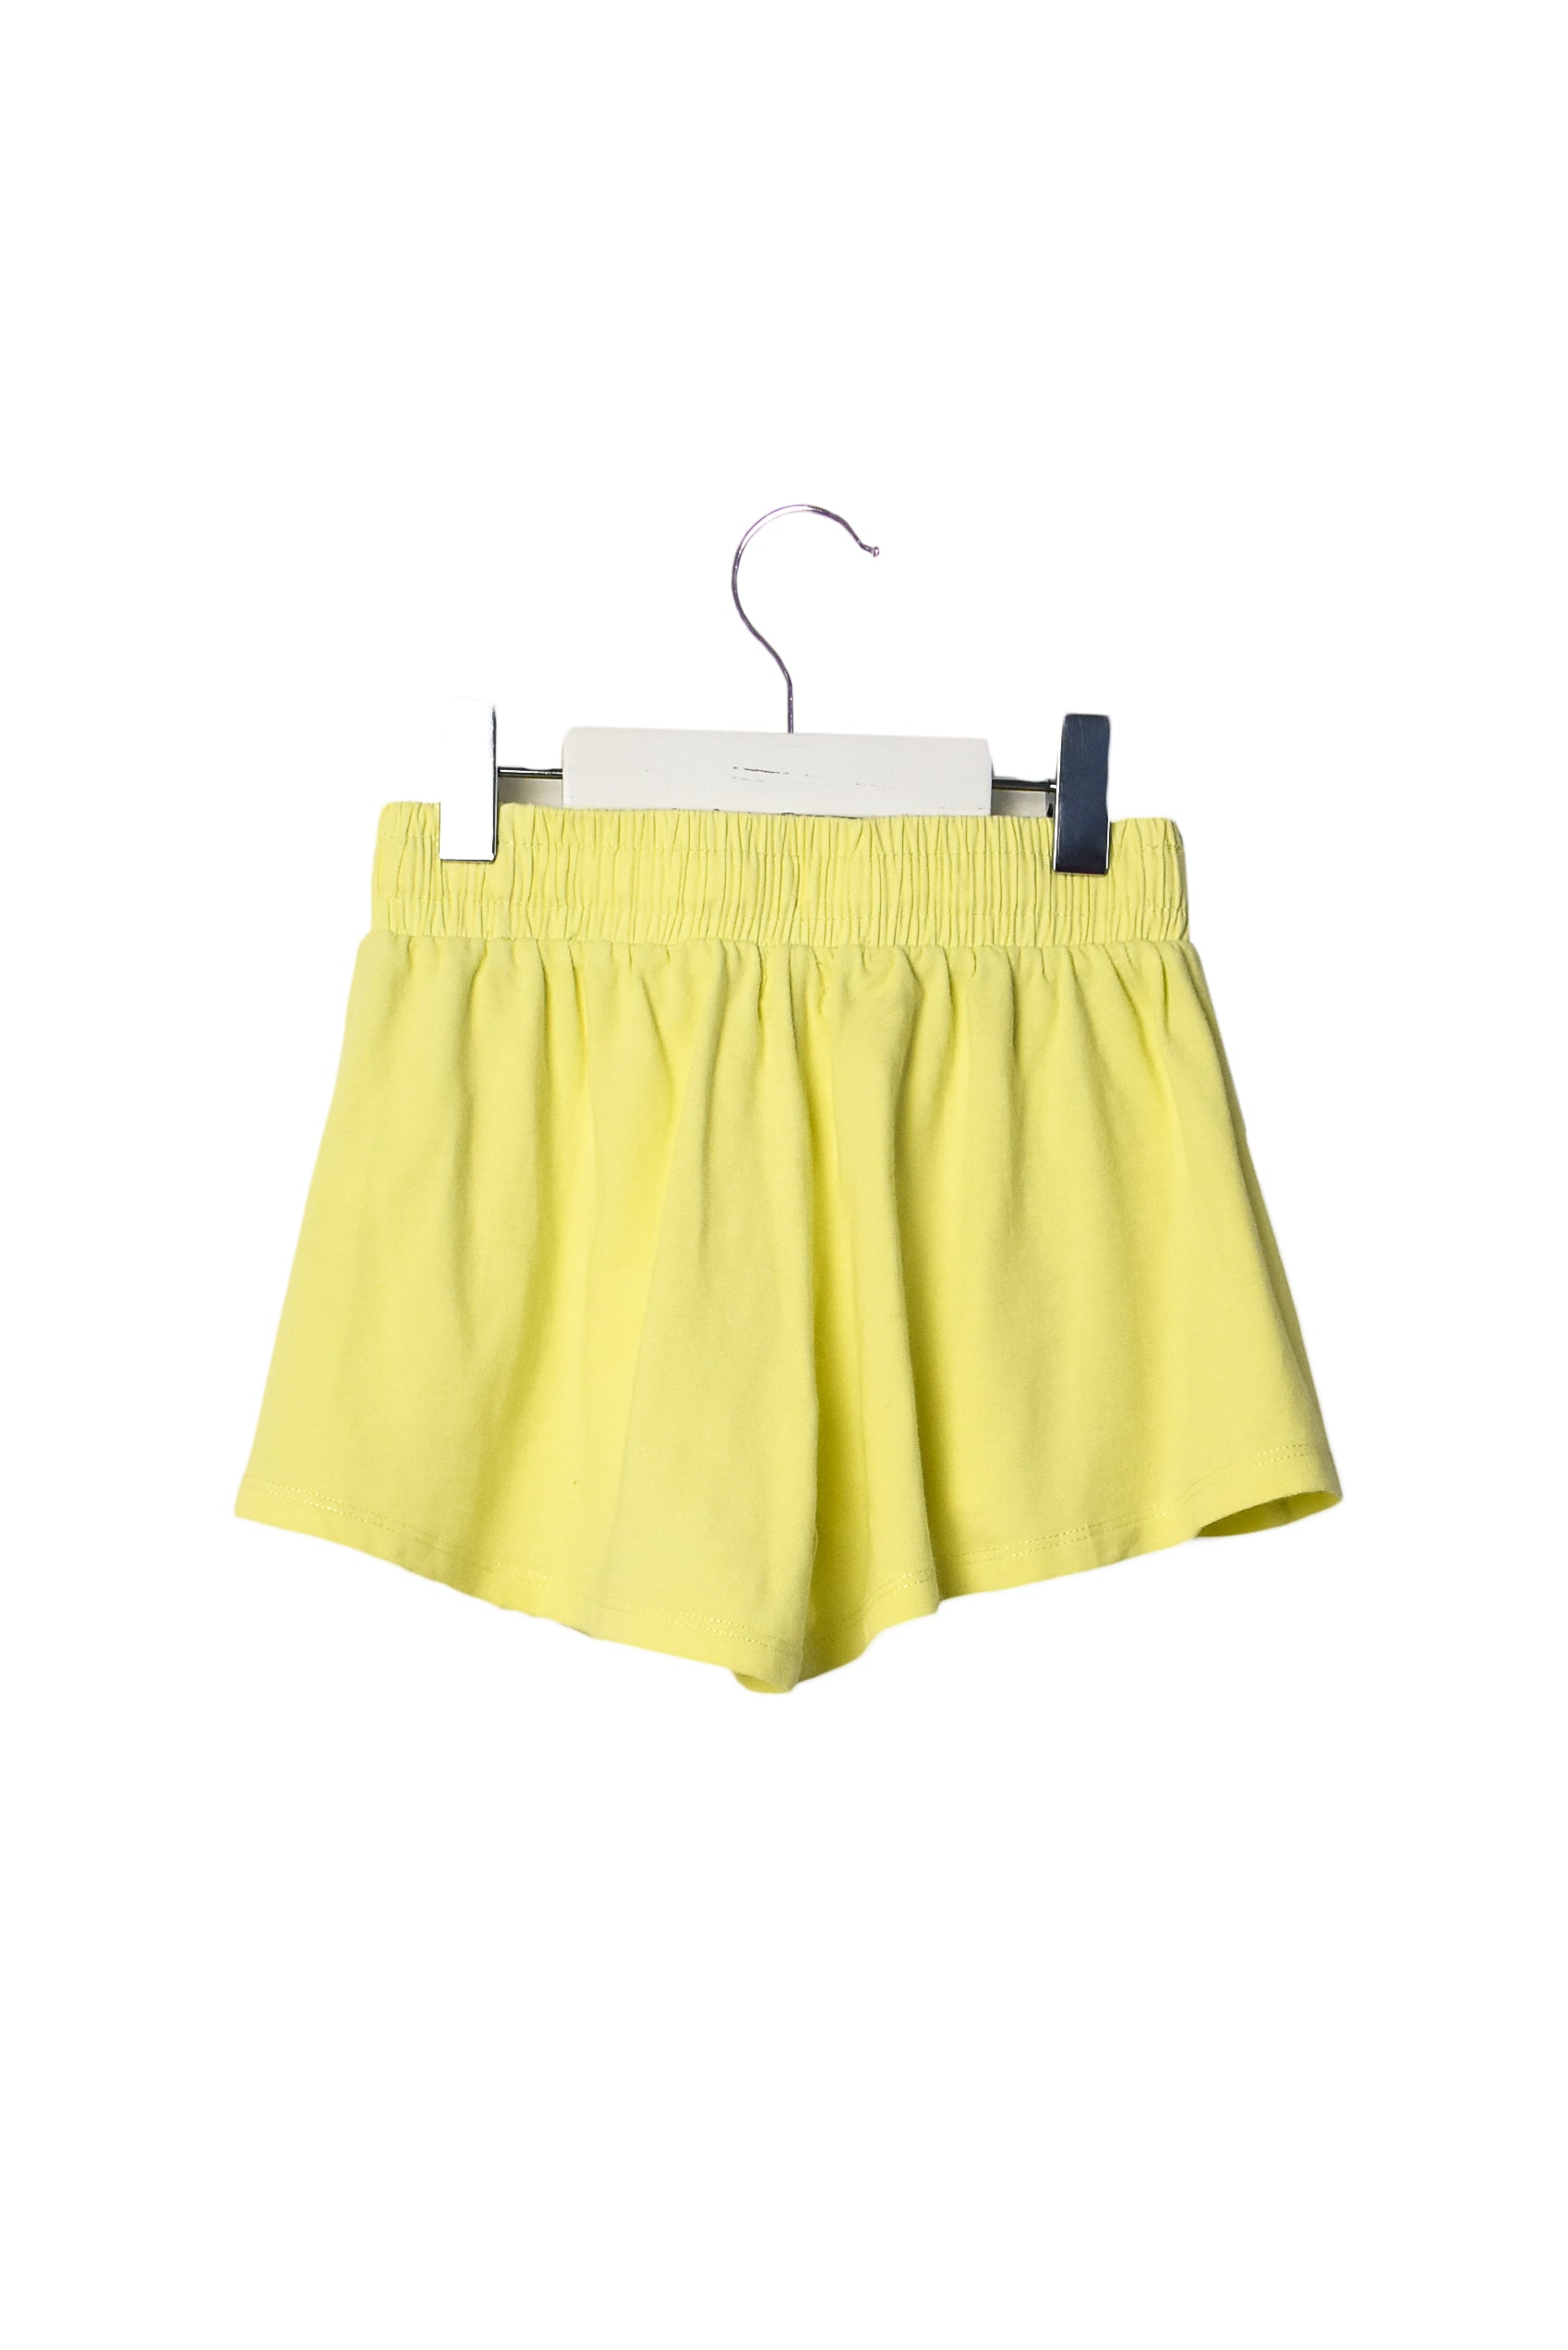 10006862 Seed Kids~Shorts 3-4T at Retykle